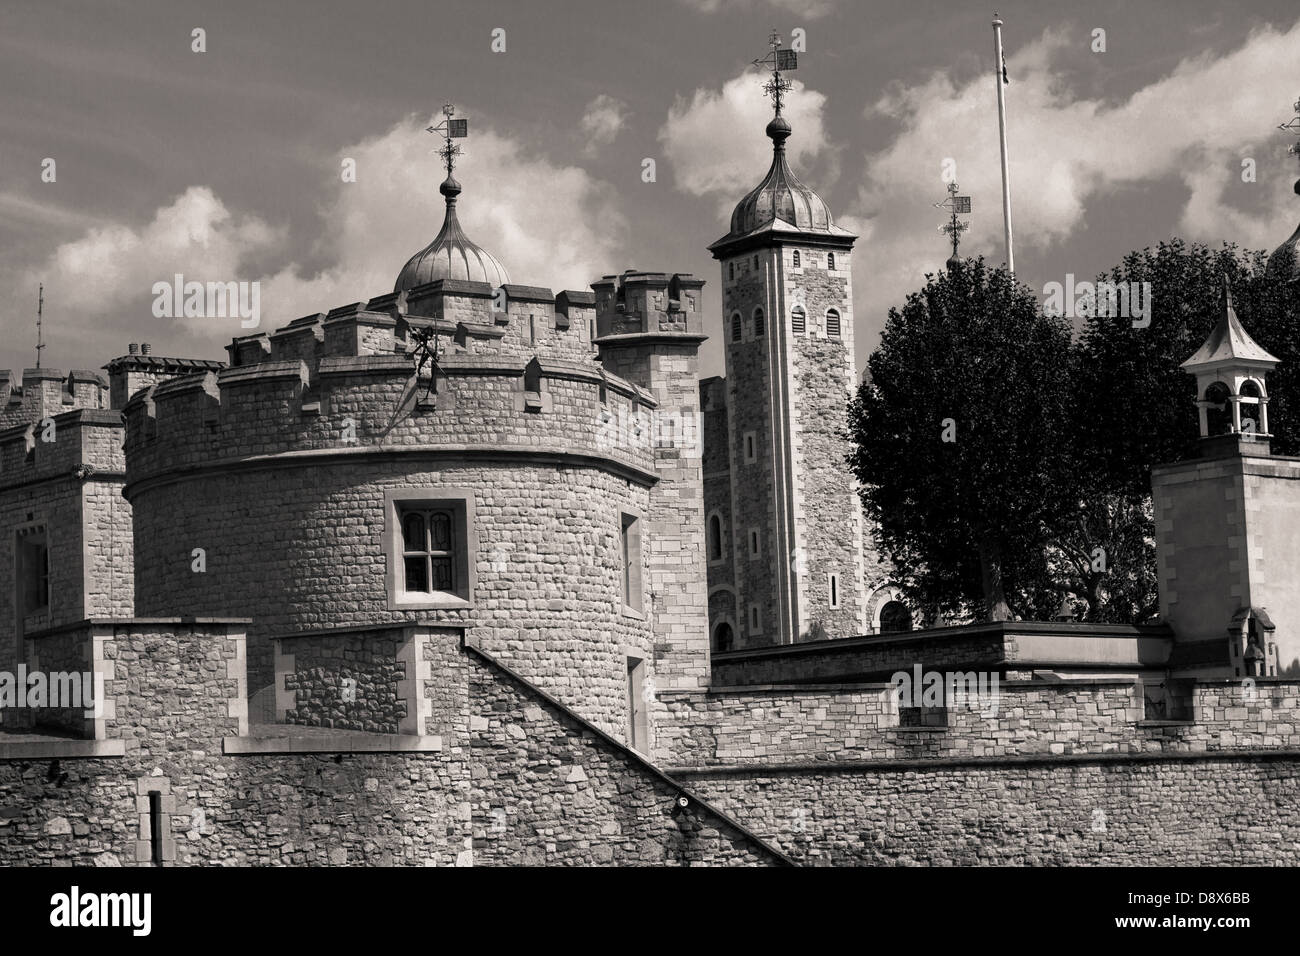 famous architectural buildings black and white. Architecture And Buildings British Culture Capital Cities City Day England Famous Place History Inner London Landma Architectural Black White E